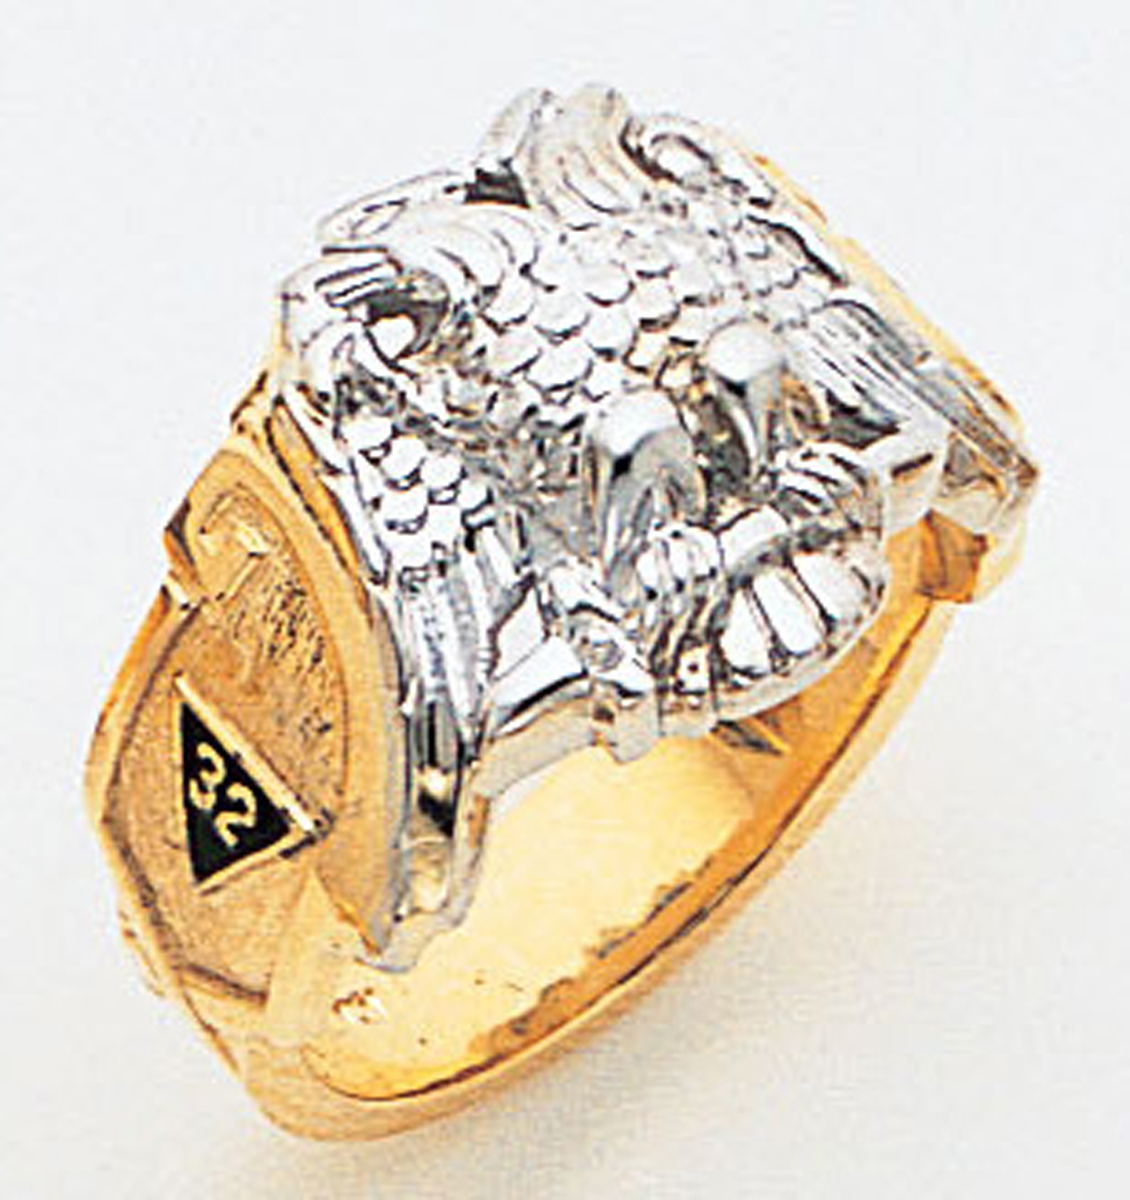 Masonic 32 Degree Scottish Rite Ring Macoy Publishing Masonic Supply 3421